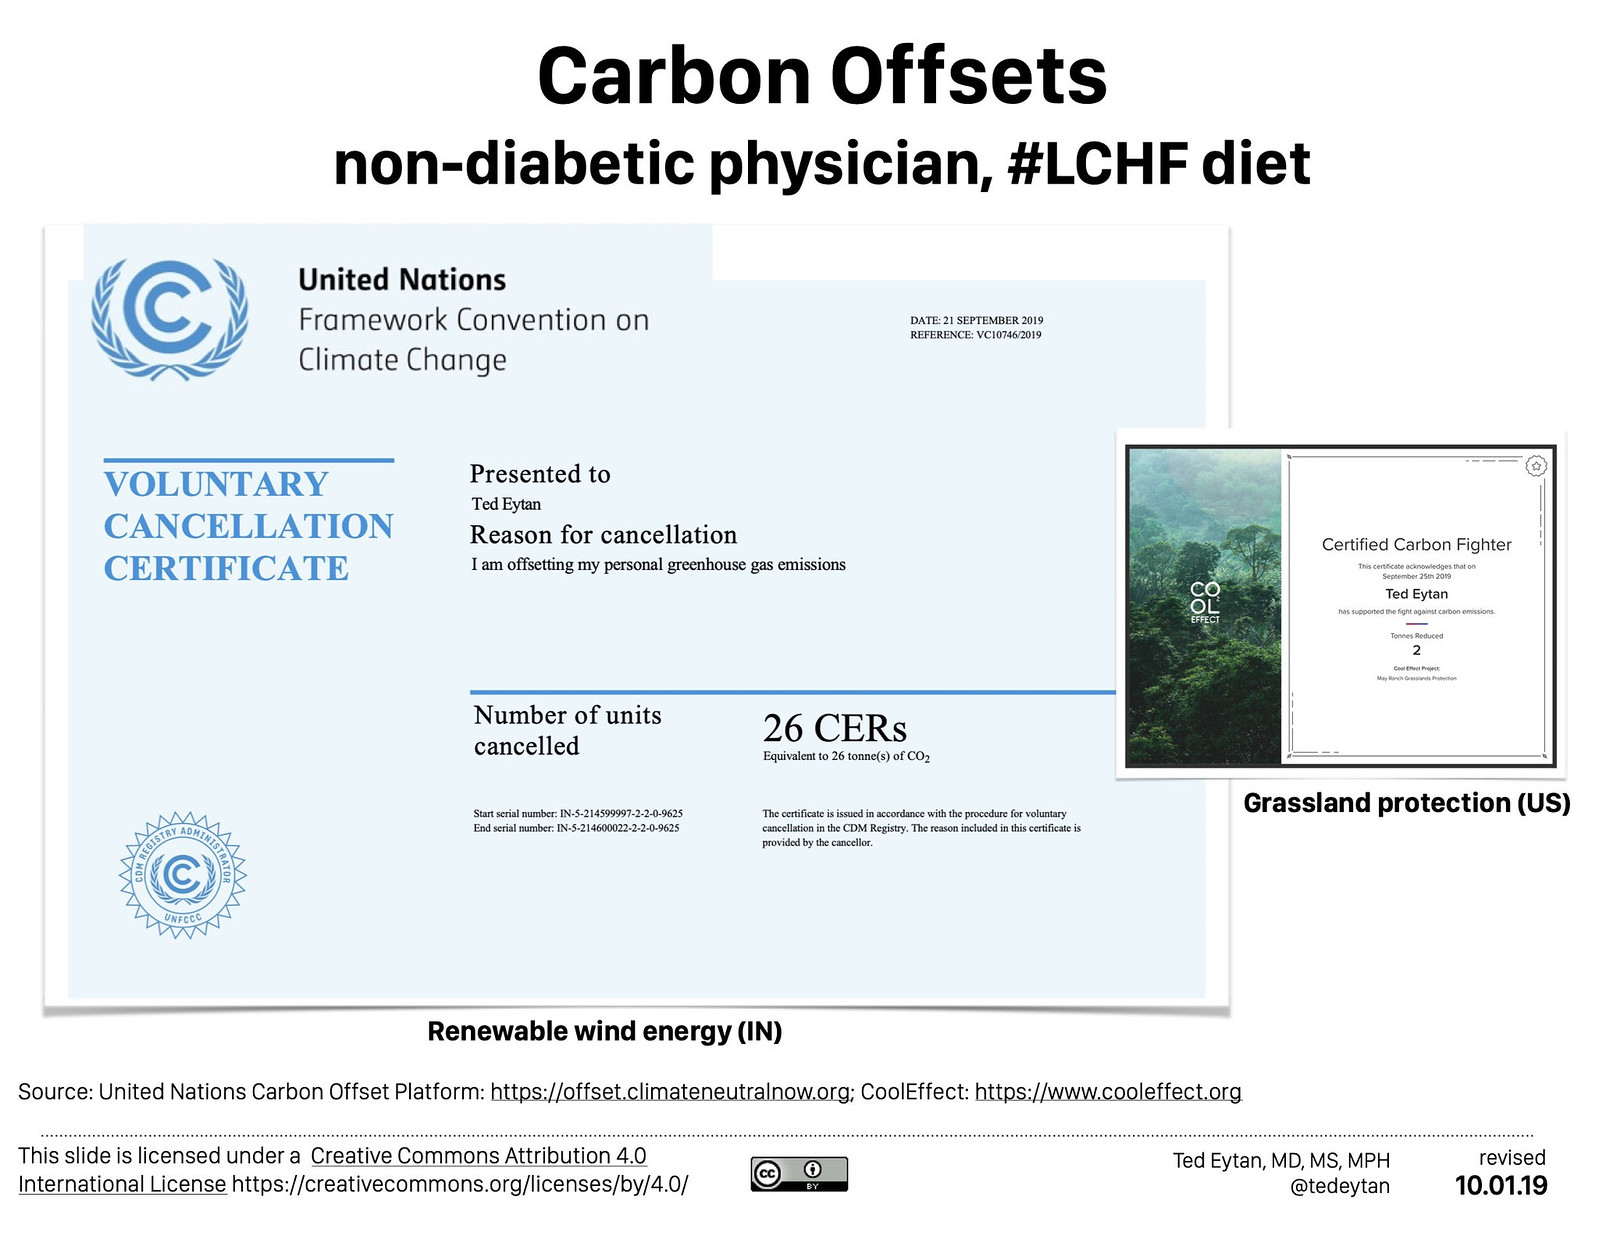 Purchasing Carbon Offsets as a non-diabetic physician on an LCHF diet - How, What, Why